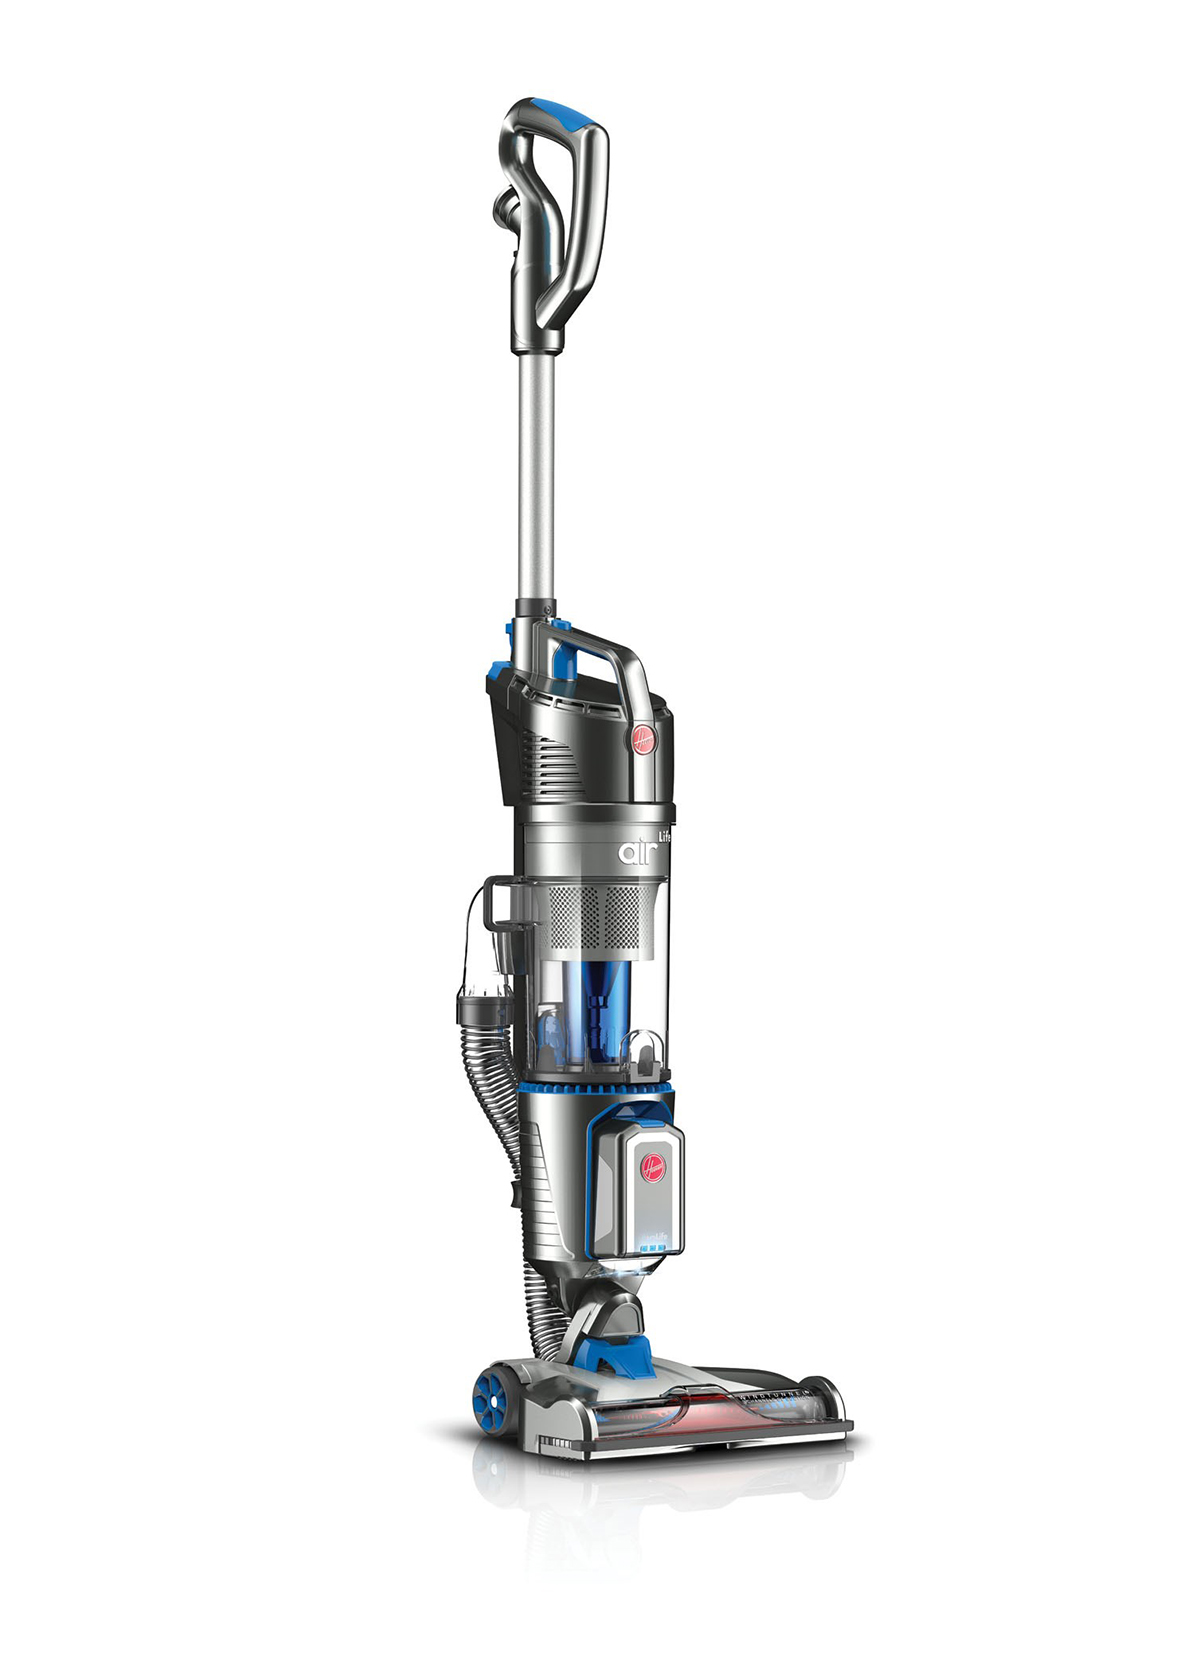 hoover air cordless lift